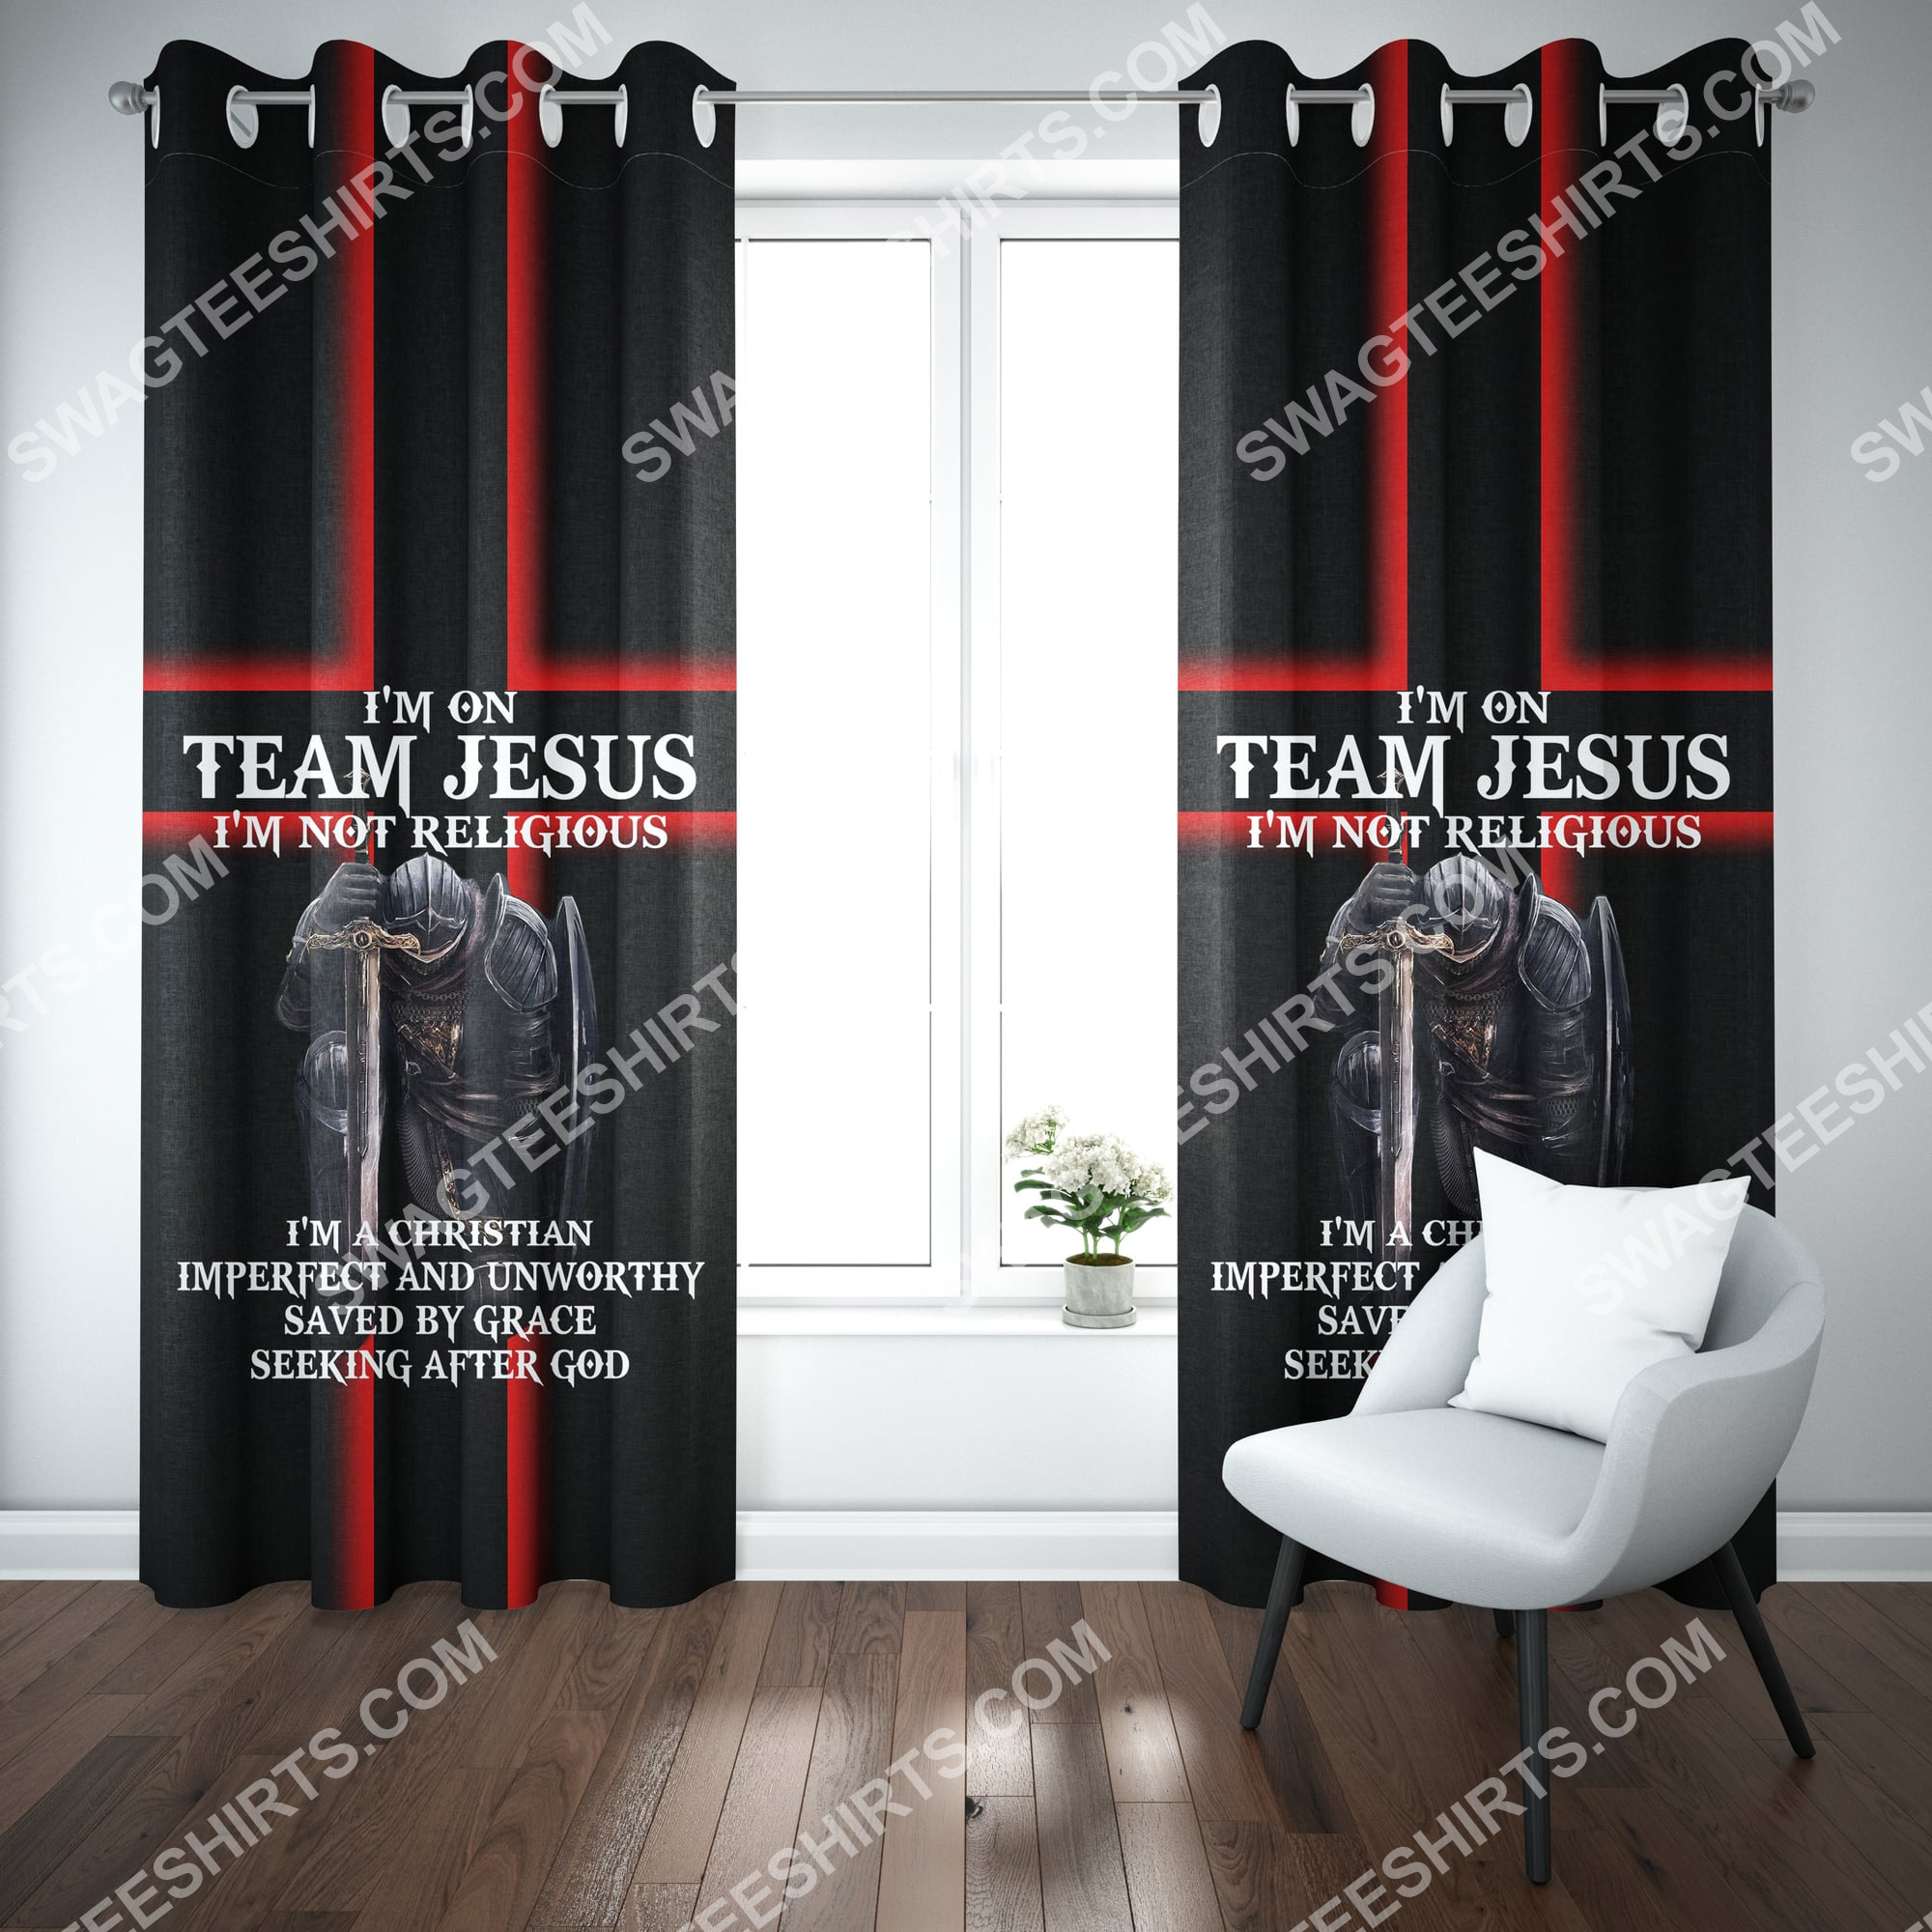 i'm on team Jesus i'm not religious all over printed window curtains 2(1)